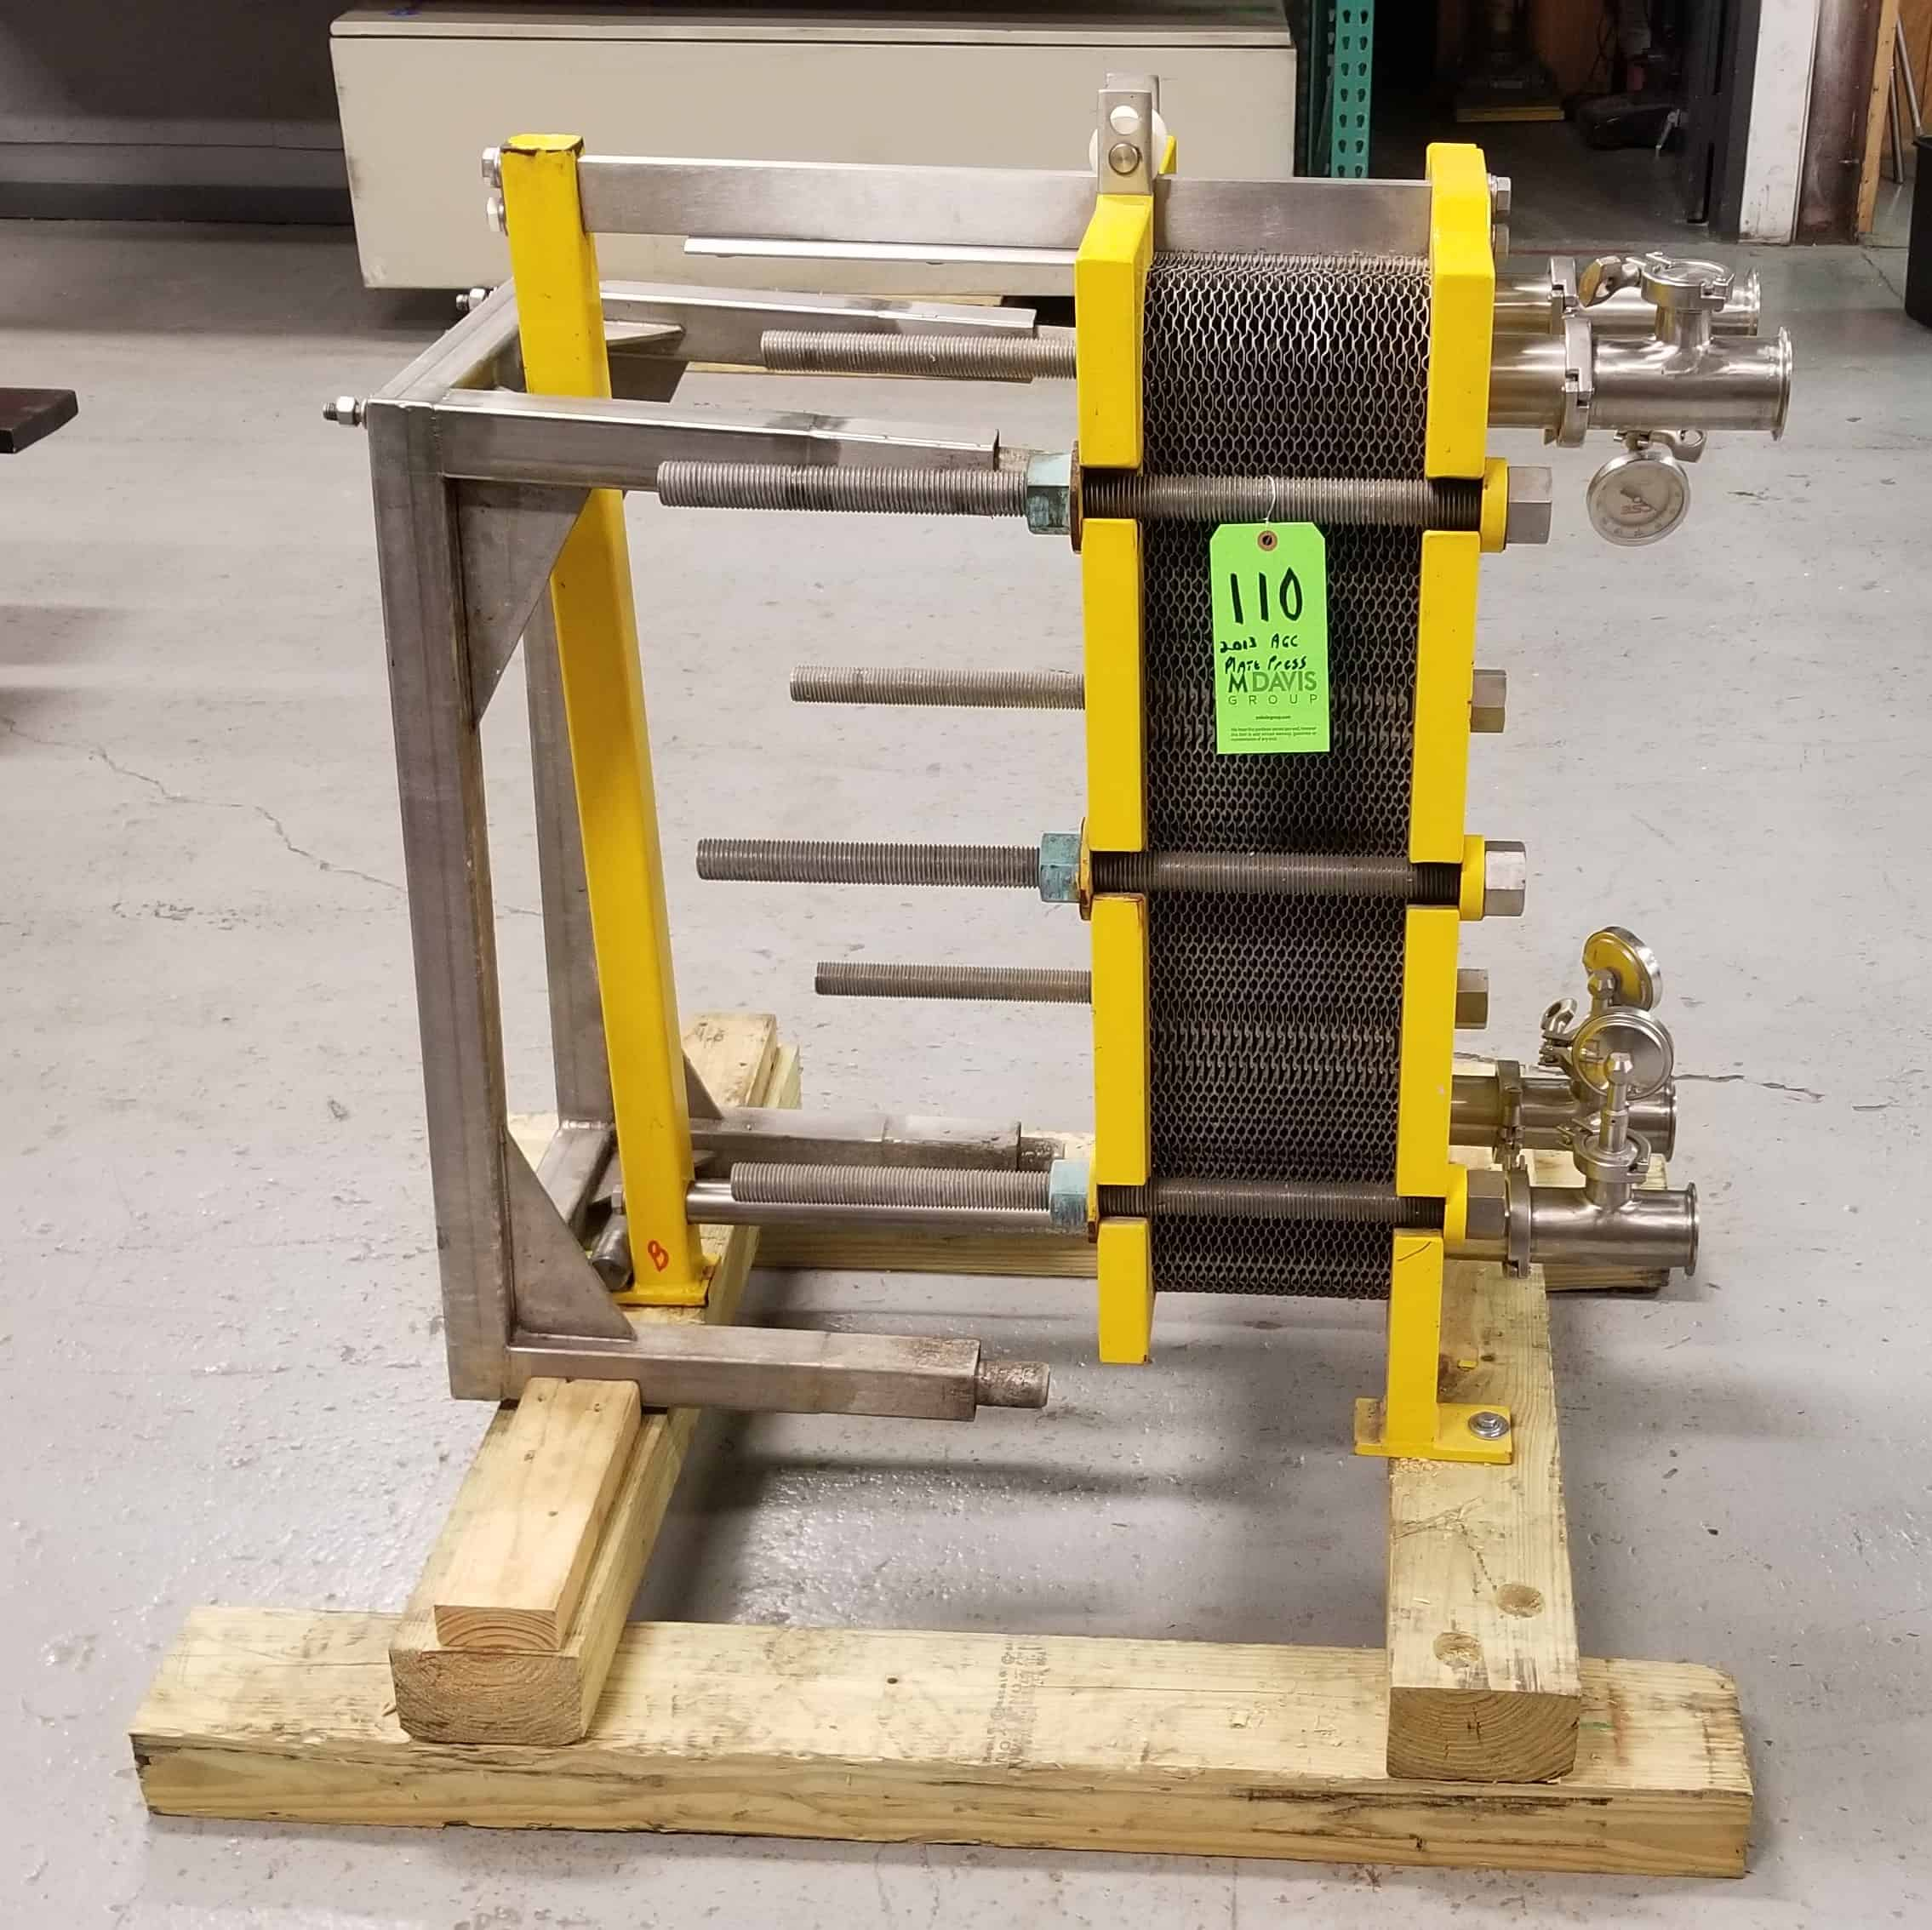 "AGC 38"" H S/S Plate Press, Model PRO2-F, S/N 2013122 with (46) S/S Plates, 2-1/2"" Clamp Type Connections with Gauges, 250 Degree Max. Temp, 150 Max. psi includes S/S Stand"